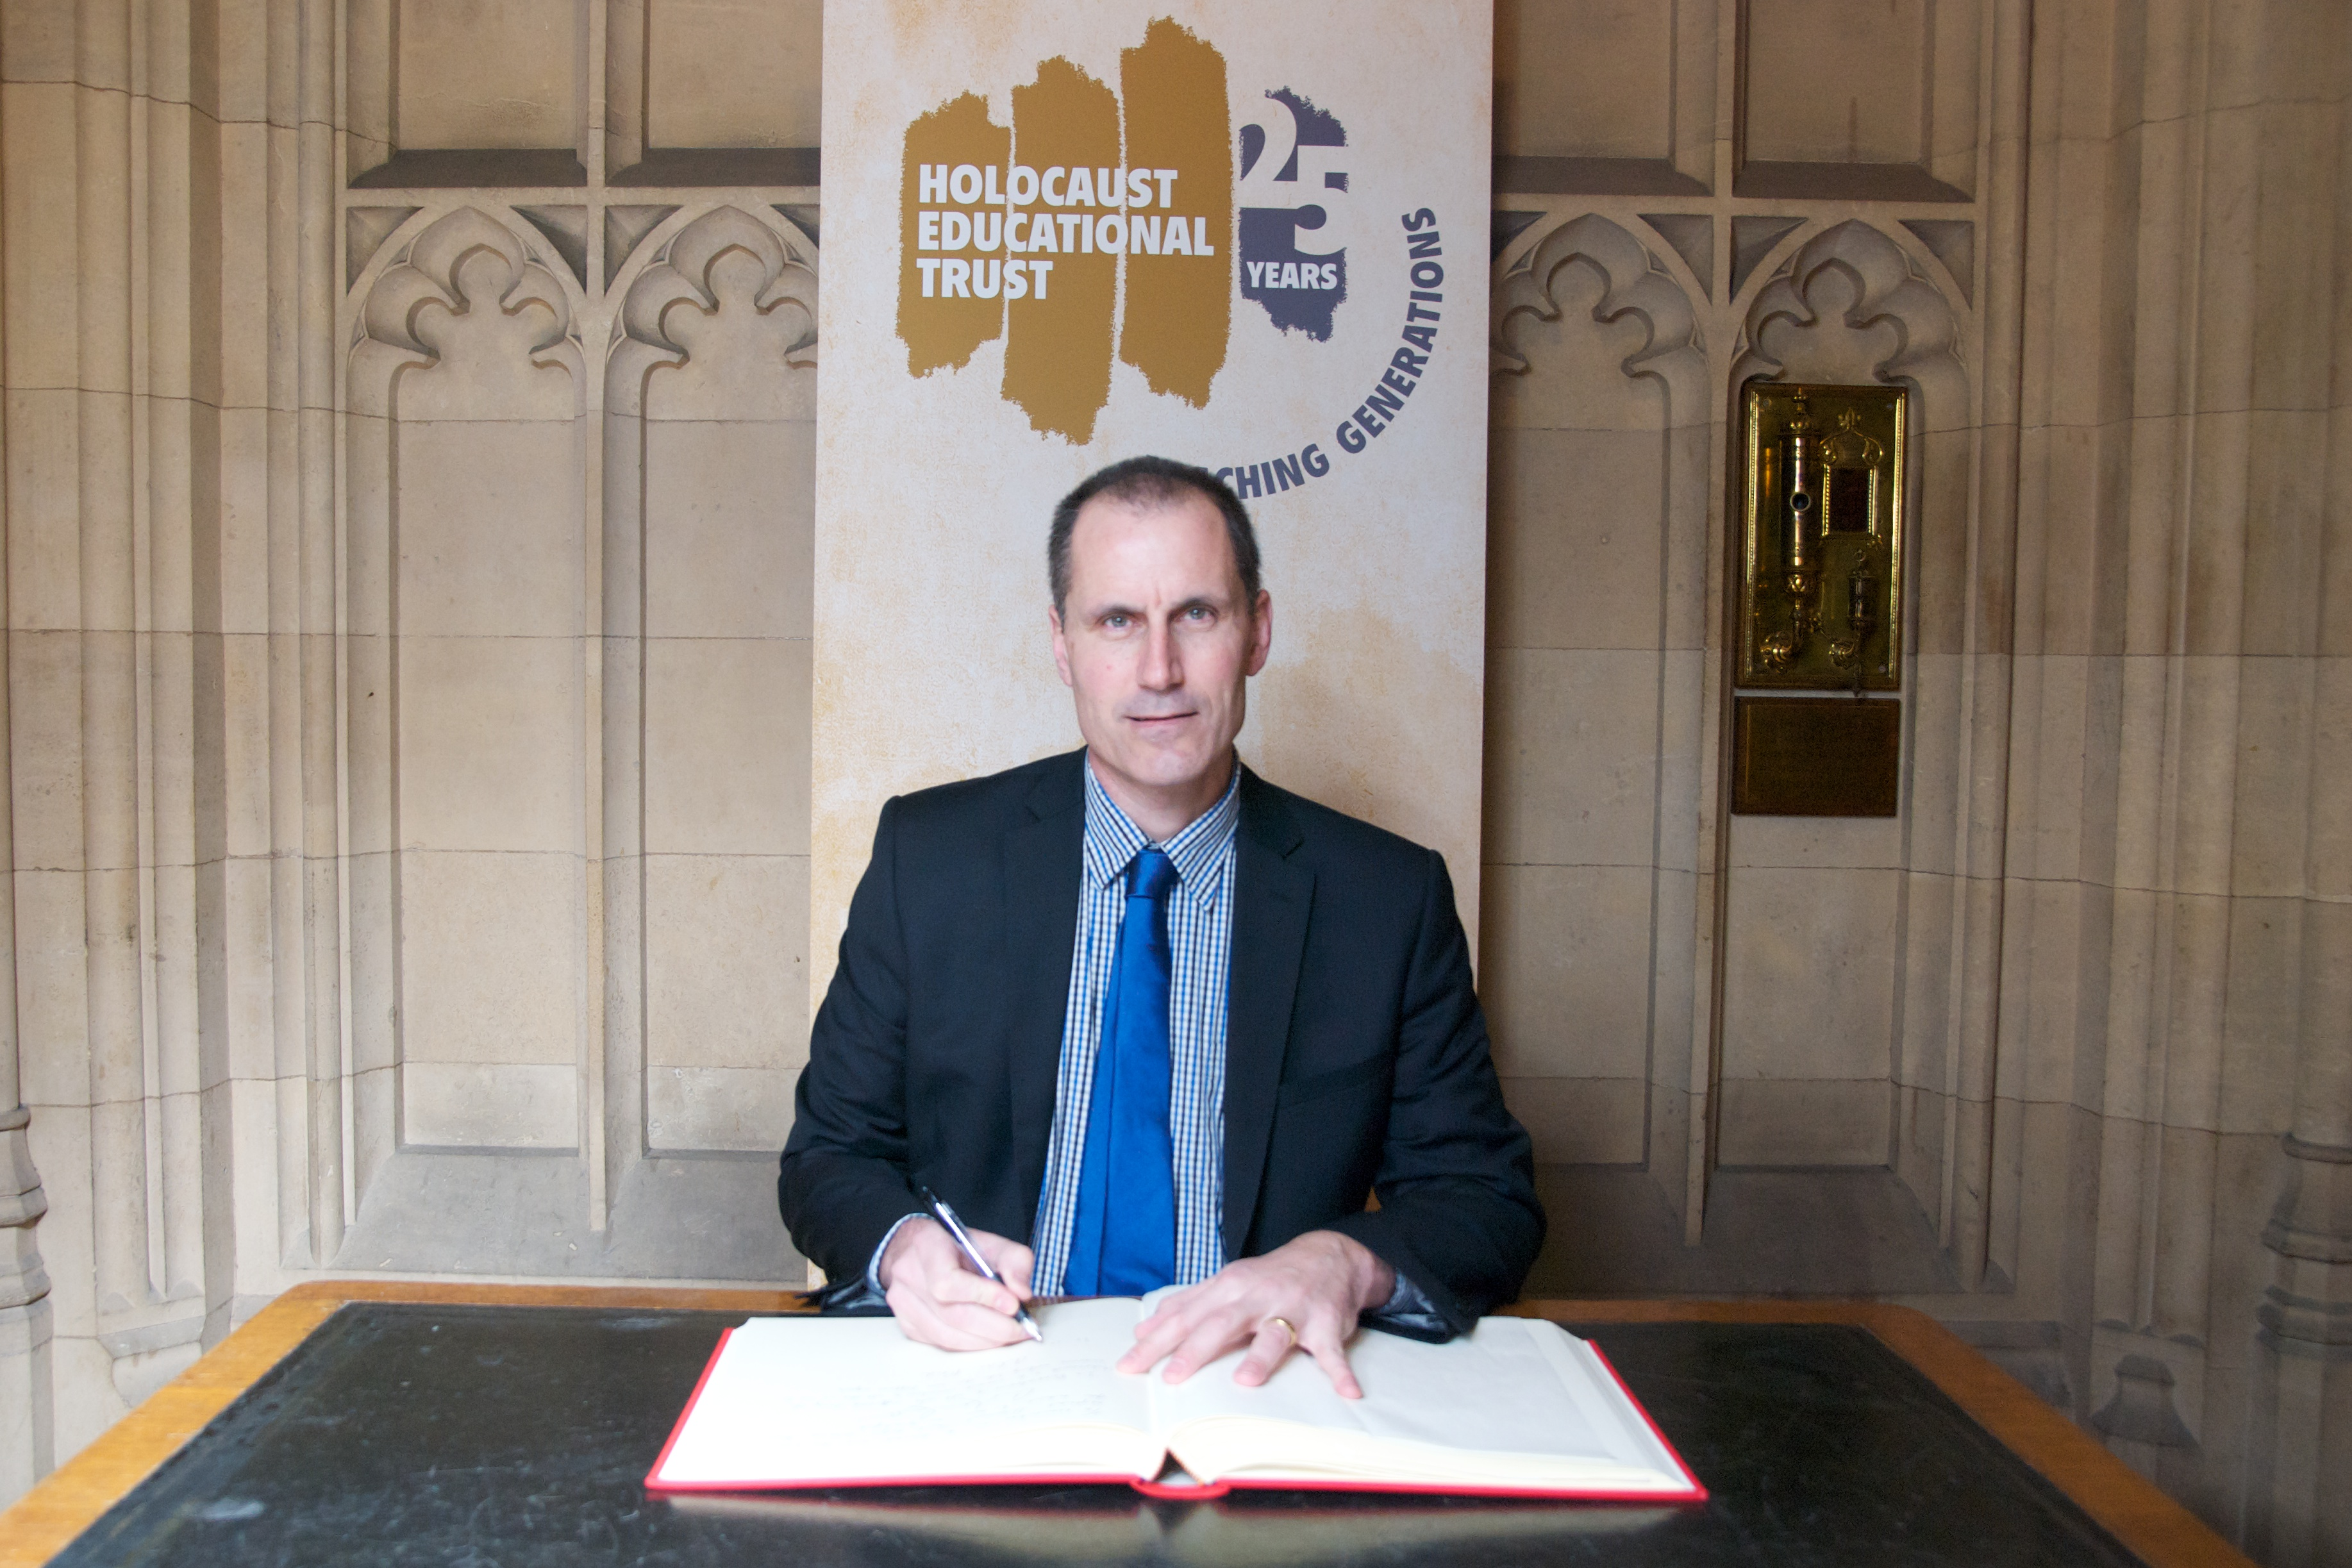 Sefton Central Labour MP Bill Esterson signed the Book of Commitment pledging his support of Holocaust Memorial Day.